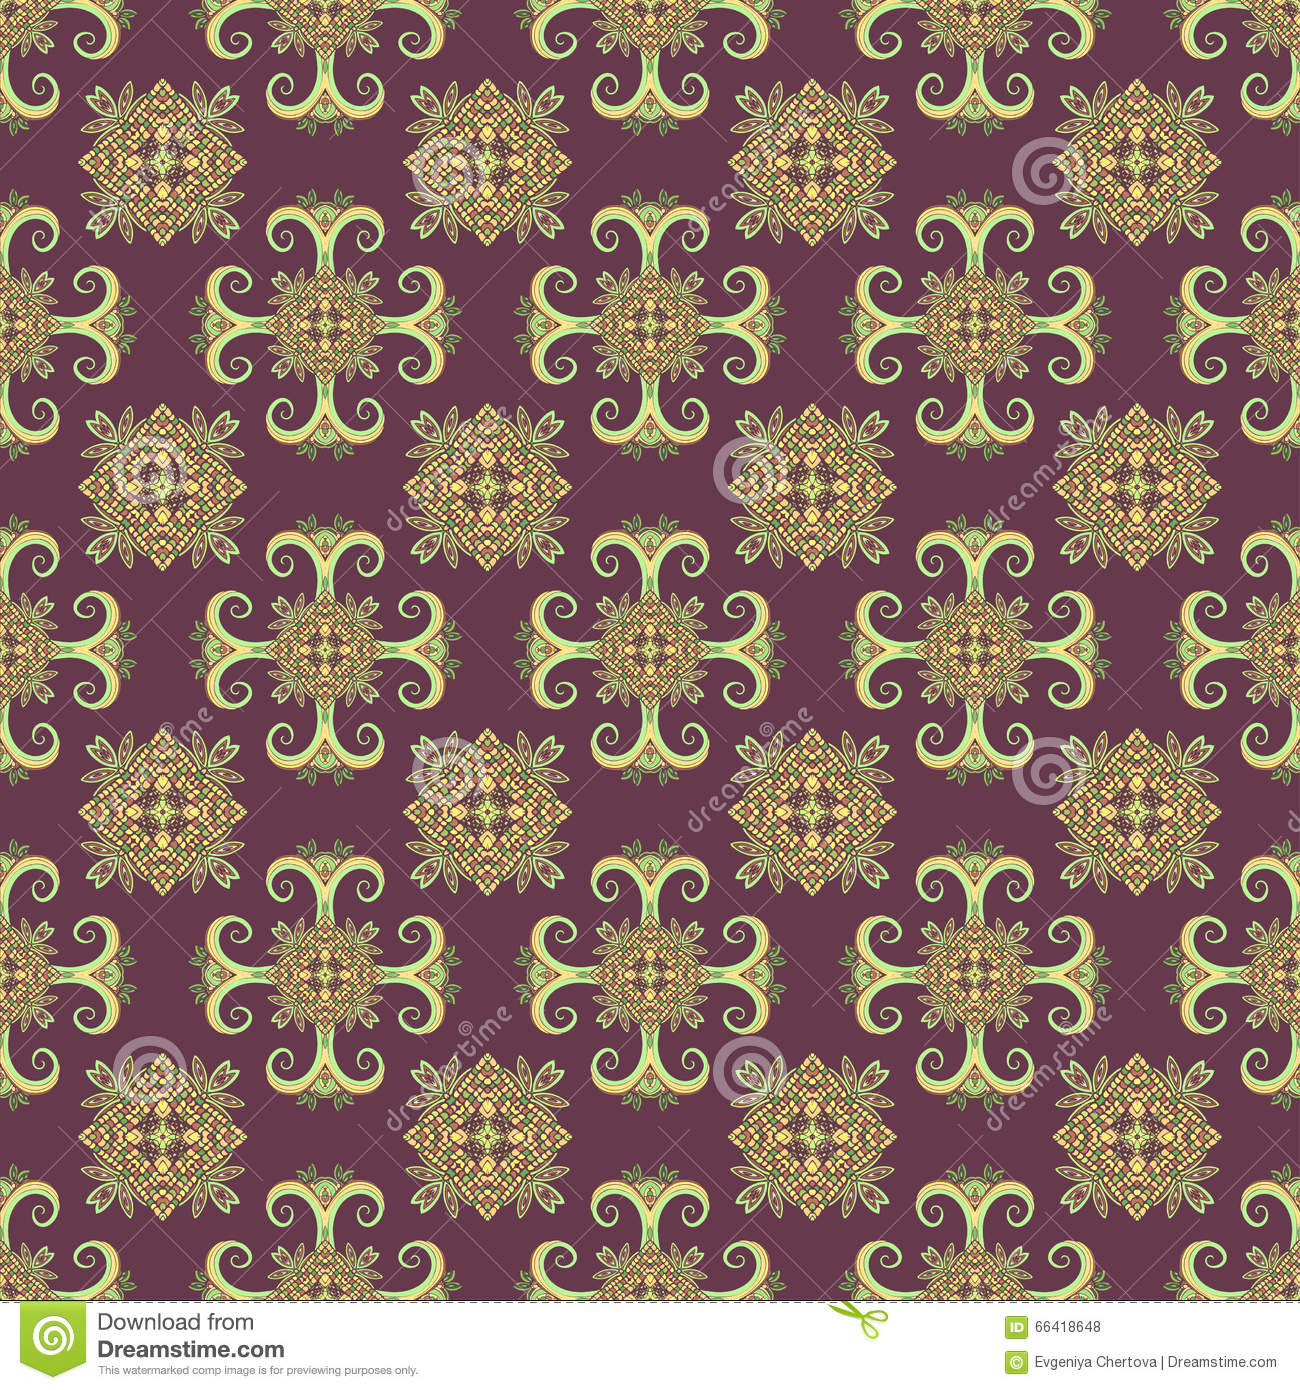 Abstract Flower Background With Decoration Elements For: Ethno Seamless Pattern. Boho Ornament. Vintage Decorative